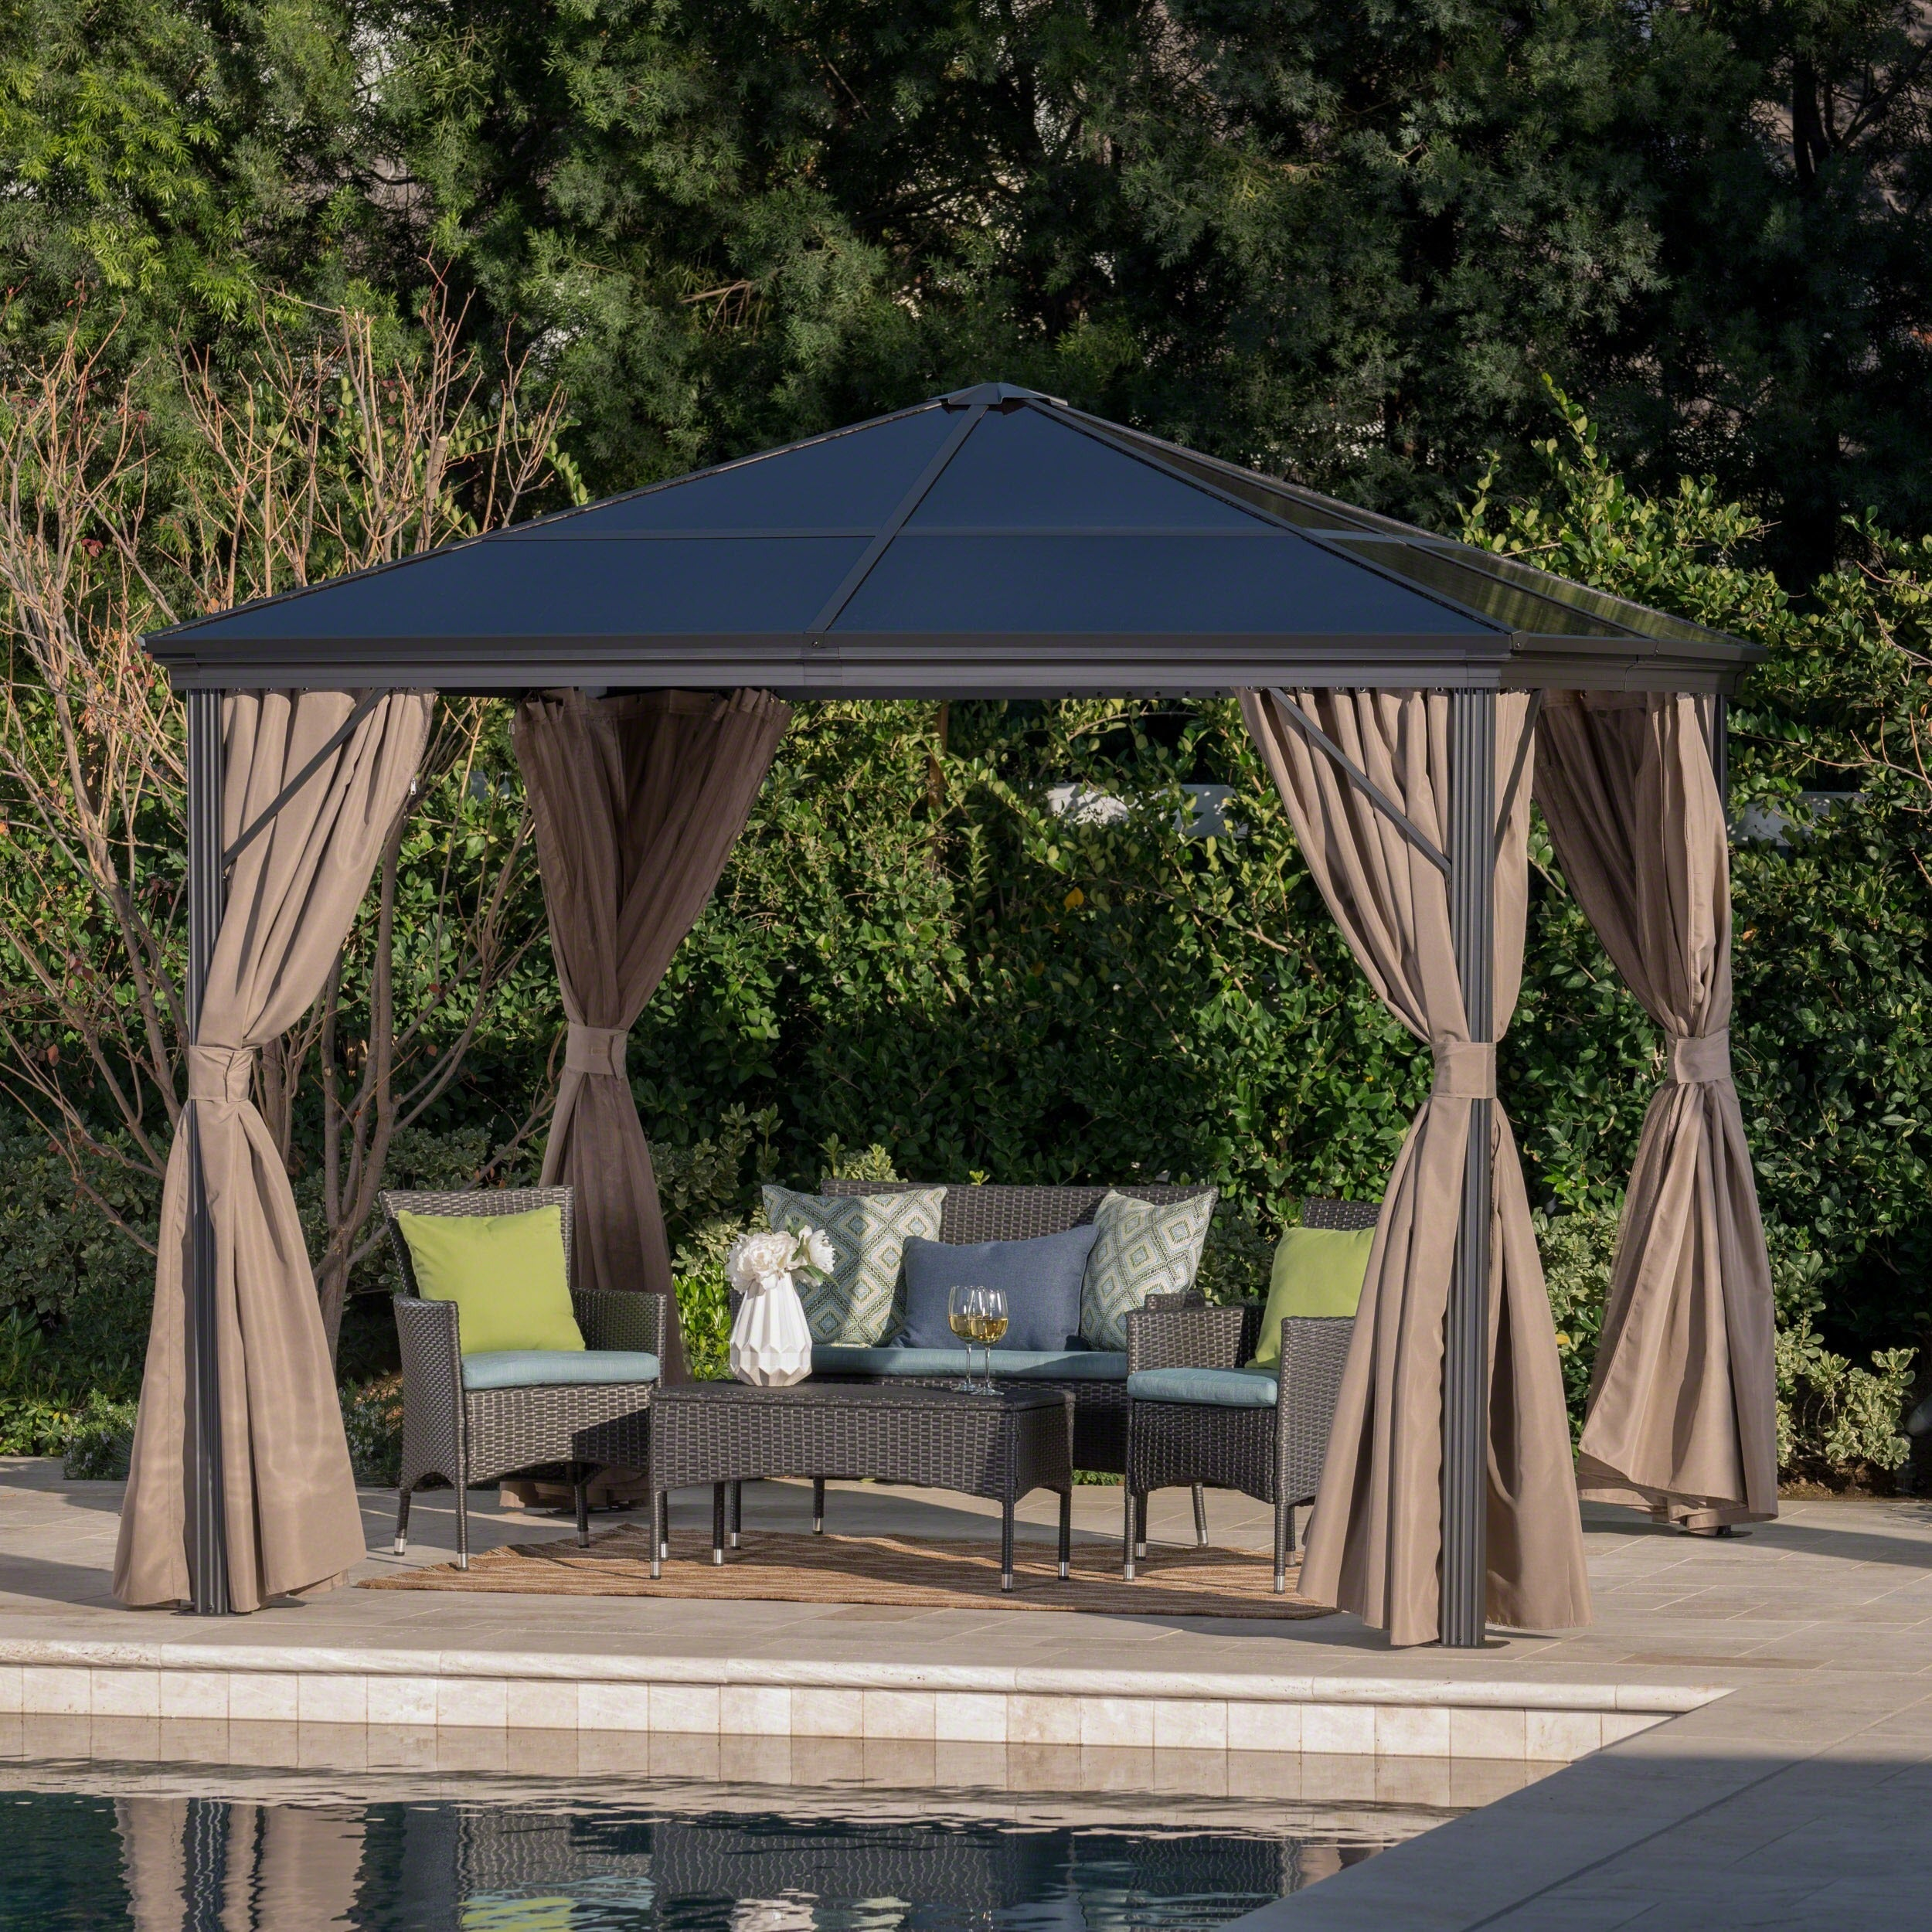 Aruba outdoor 10 ft aluminum gazebo with hardtop by christopher knight home